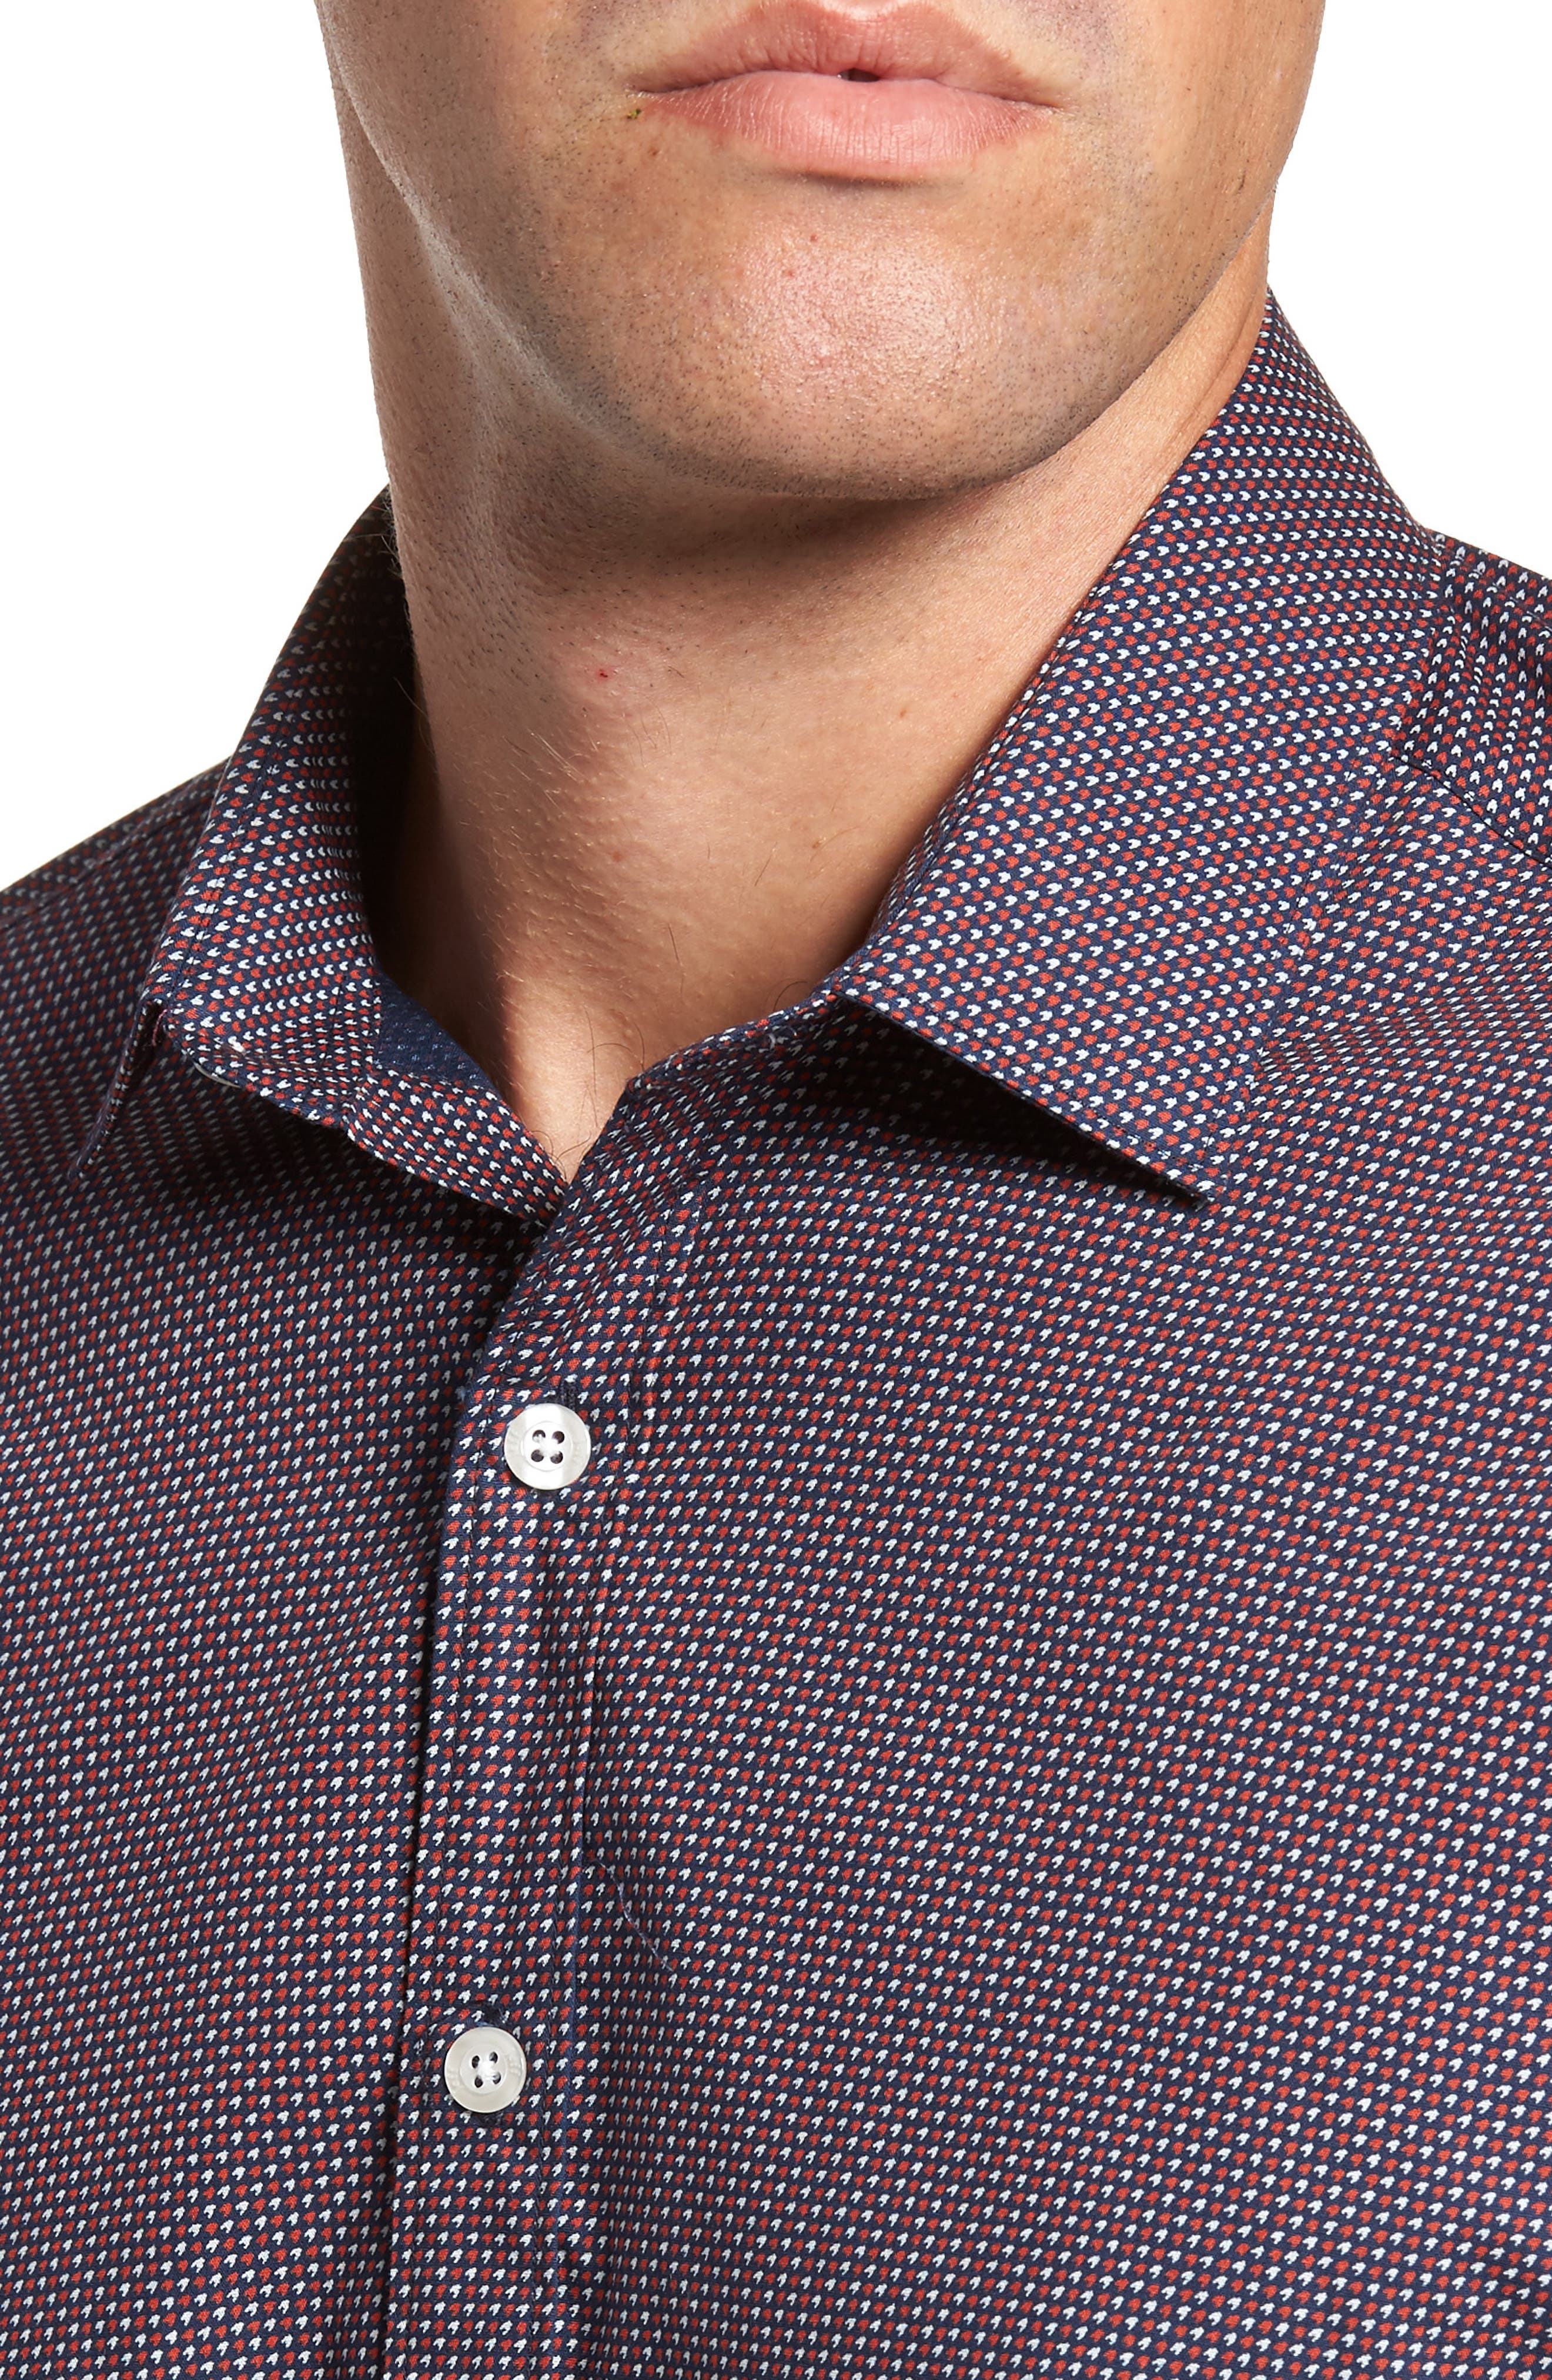 Slim Fit Houndstooth Sport Shirt,                             Alternate thumbnail 4, color,                             462